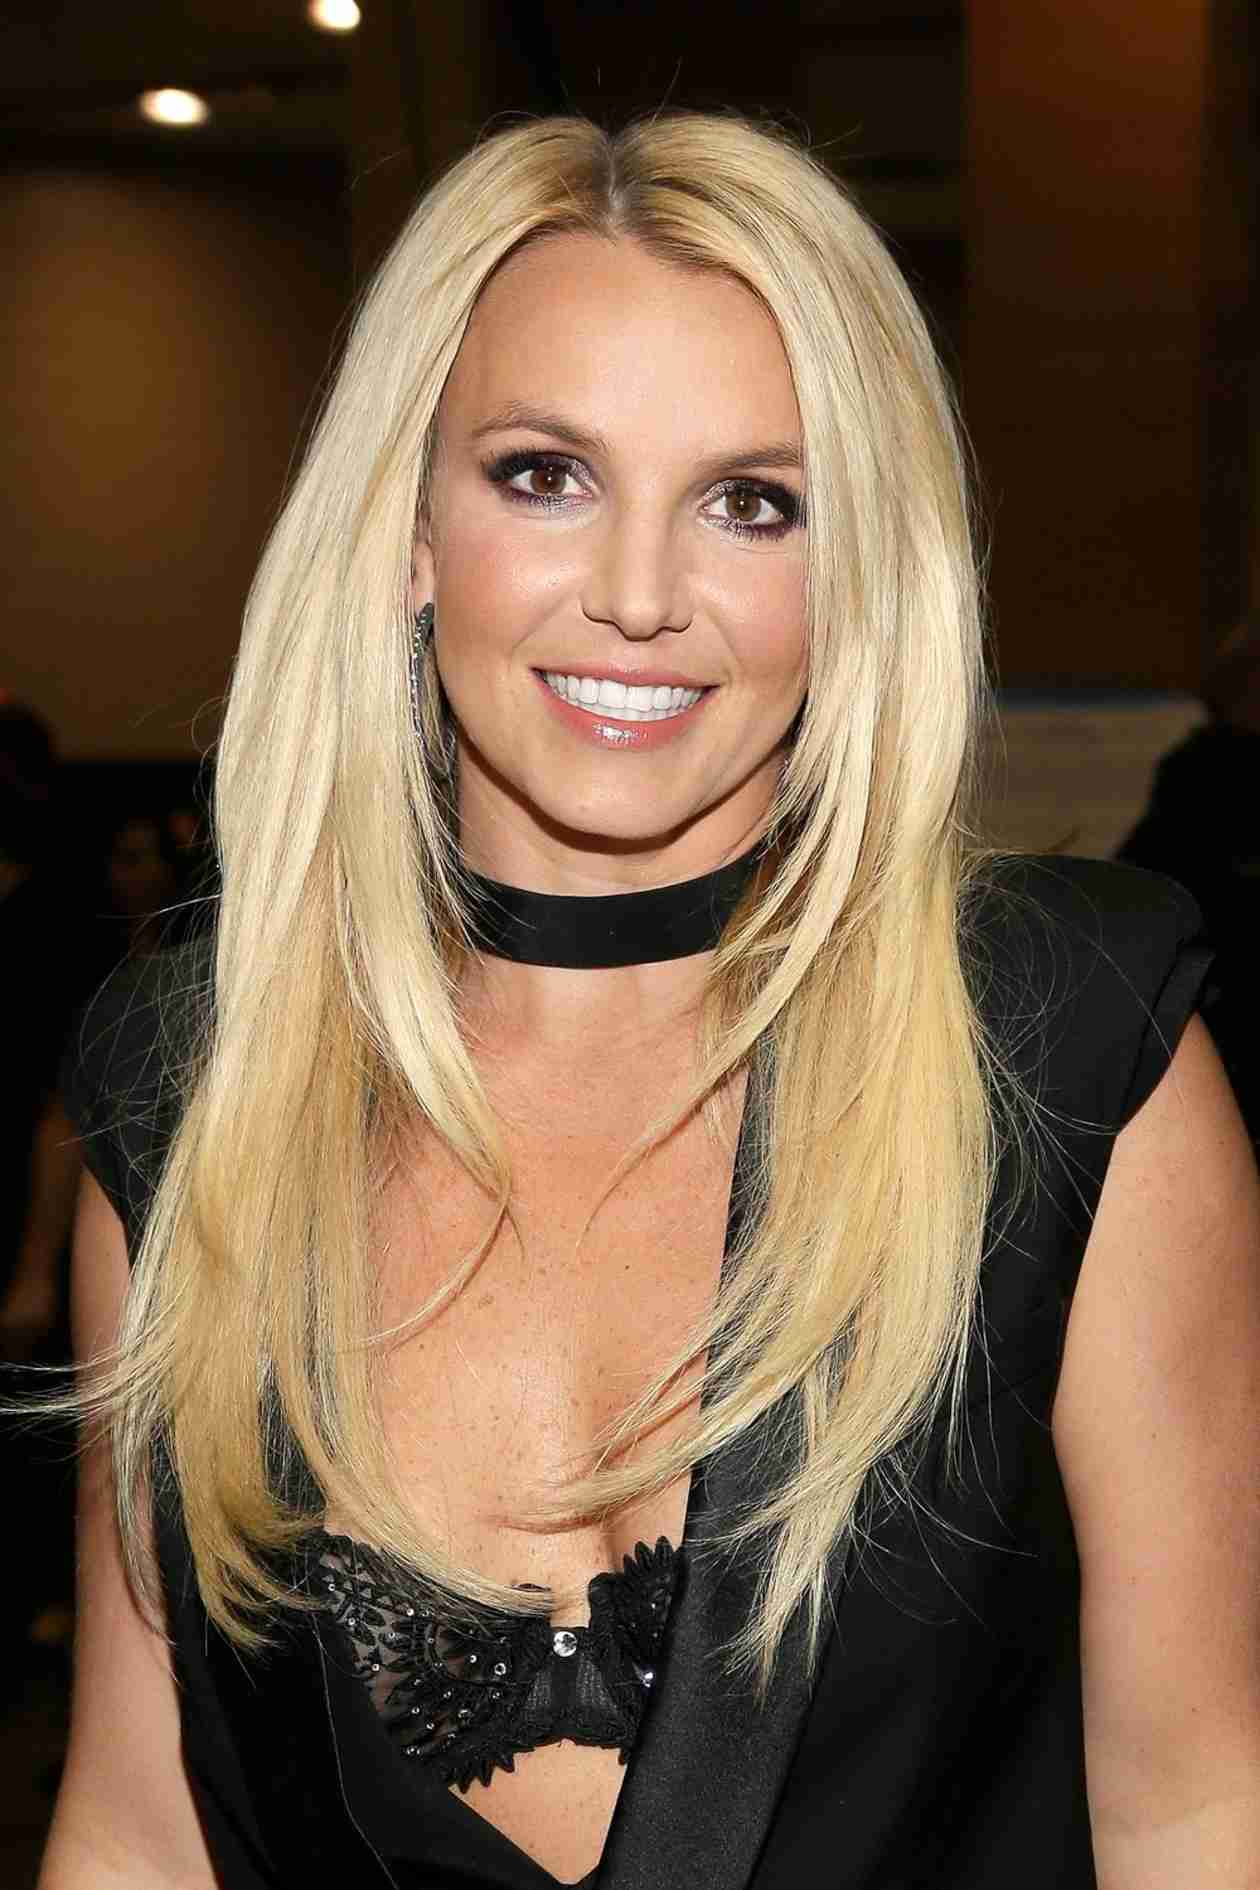 Britney Spears Is Launching a Lingerie Line! (VIDEO)